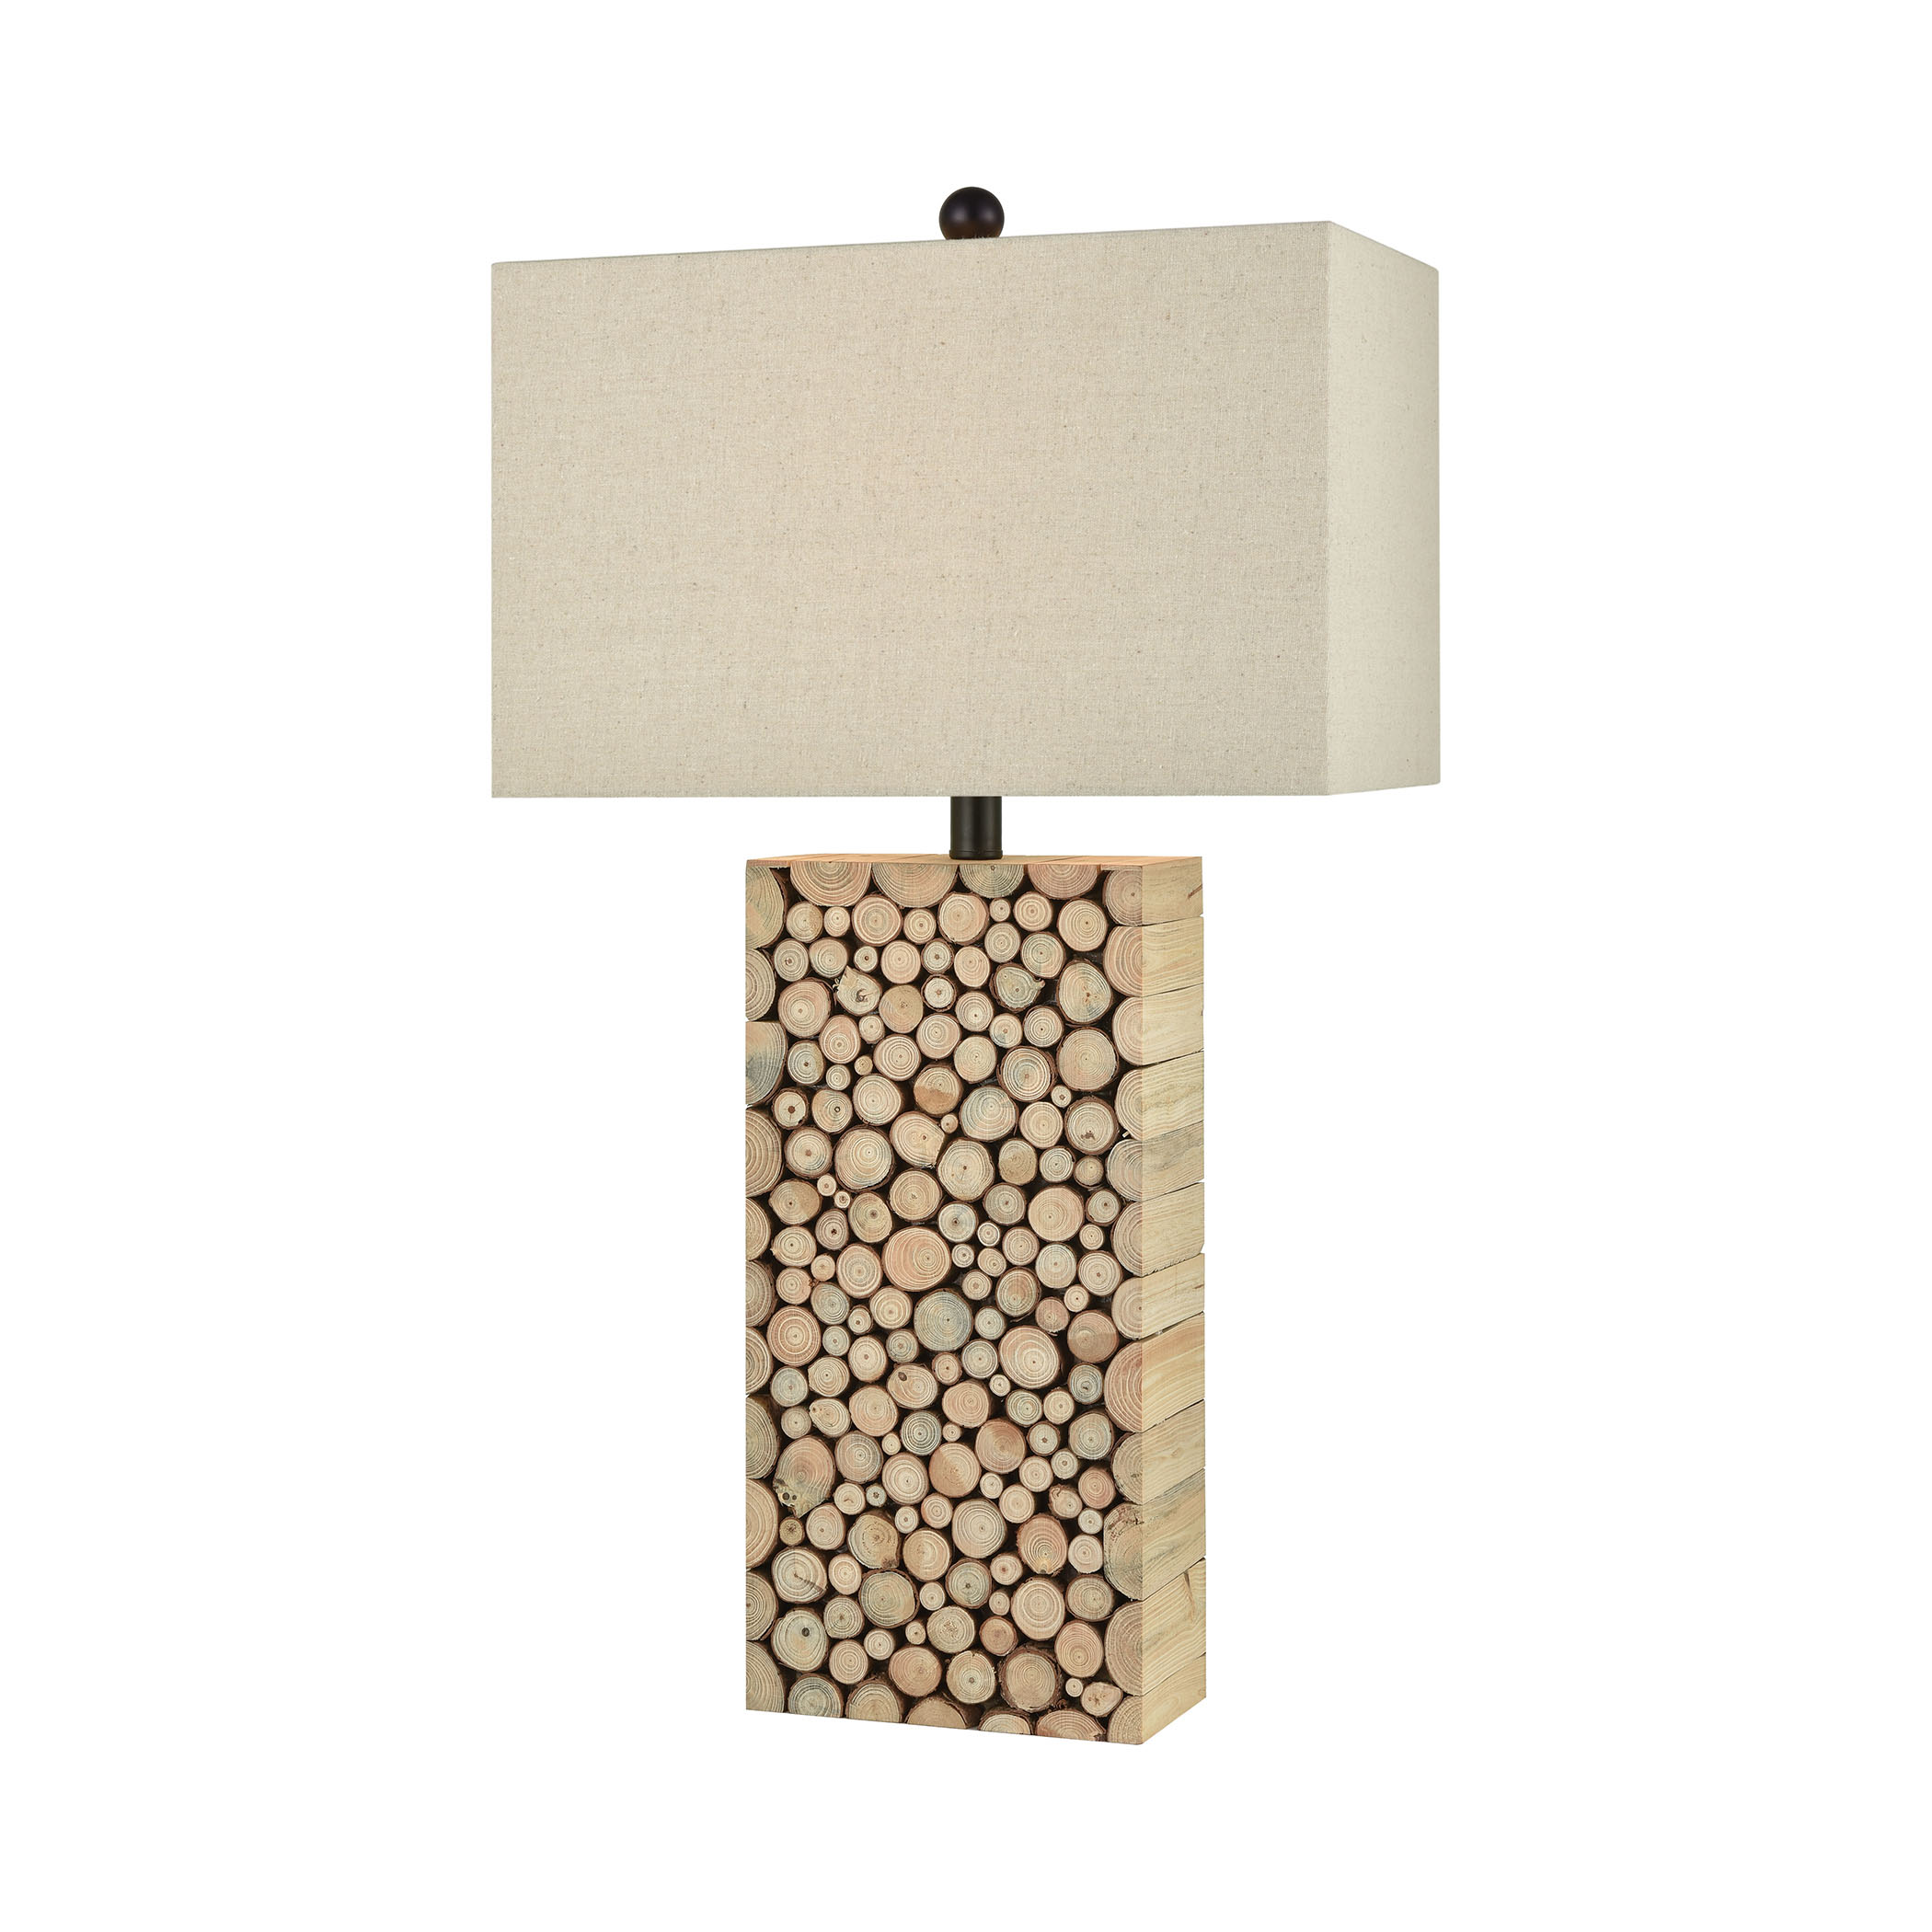 Stein-World-Clearcut-table-lamp